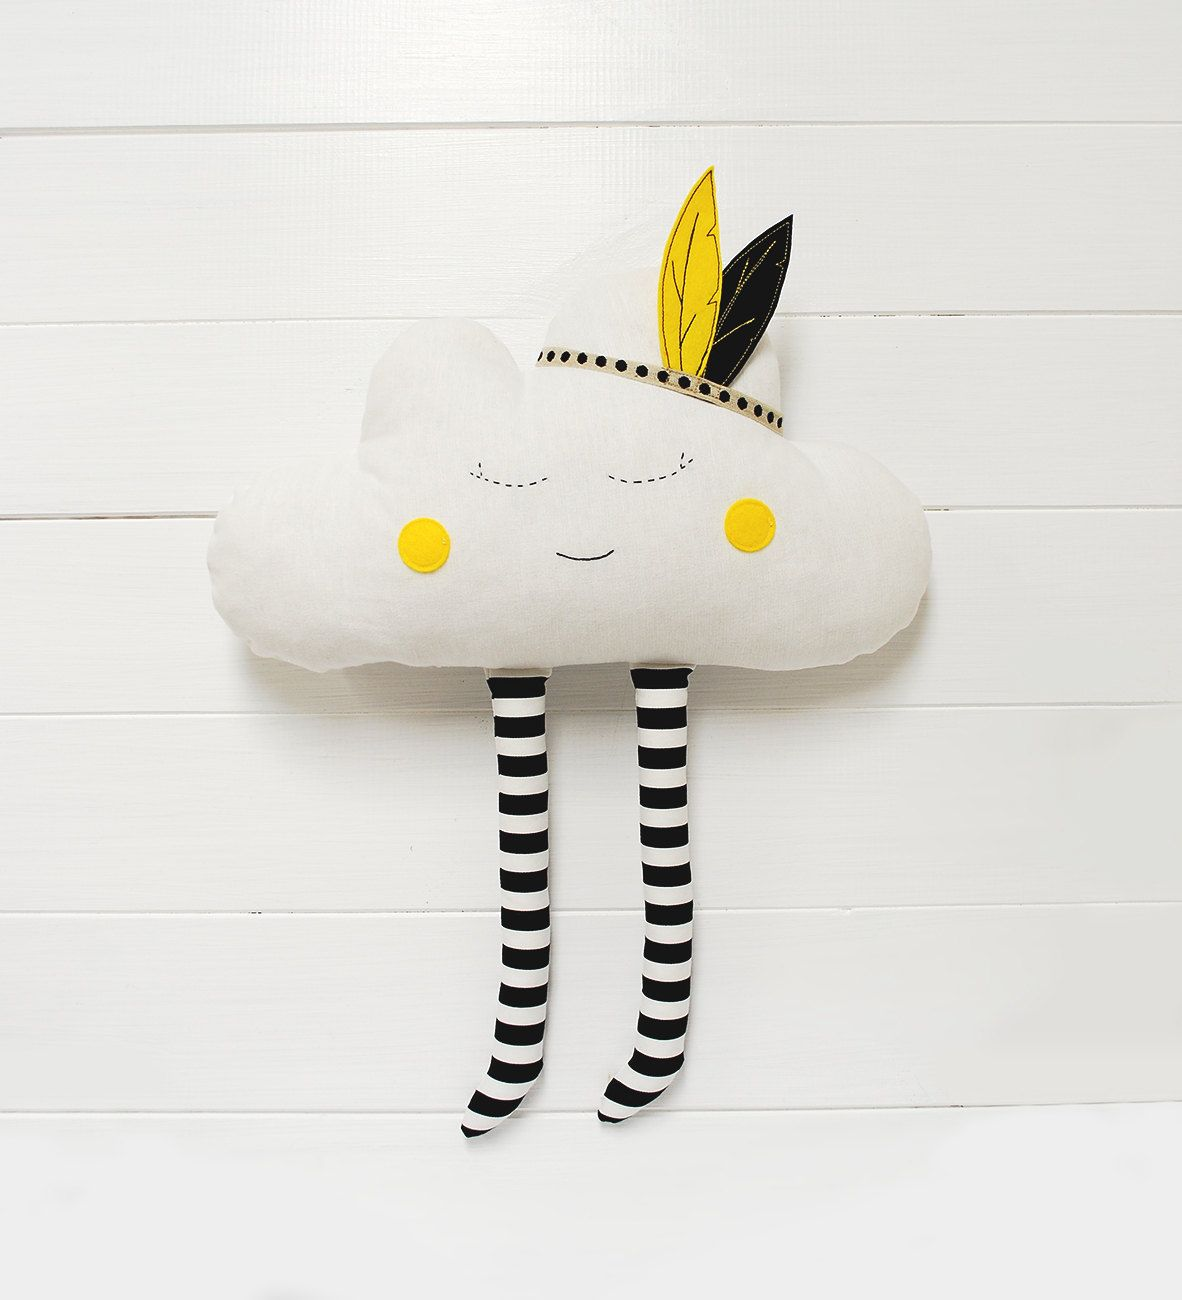 Cloud Pillow Cloud cushion Pillow Cloud Plush Happy Cloud Nursery Decor Nurse gift Feather headband Babyshower gift Nursery Decor girl